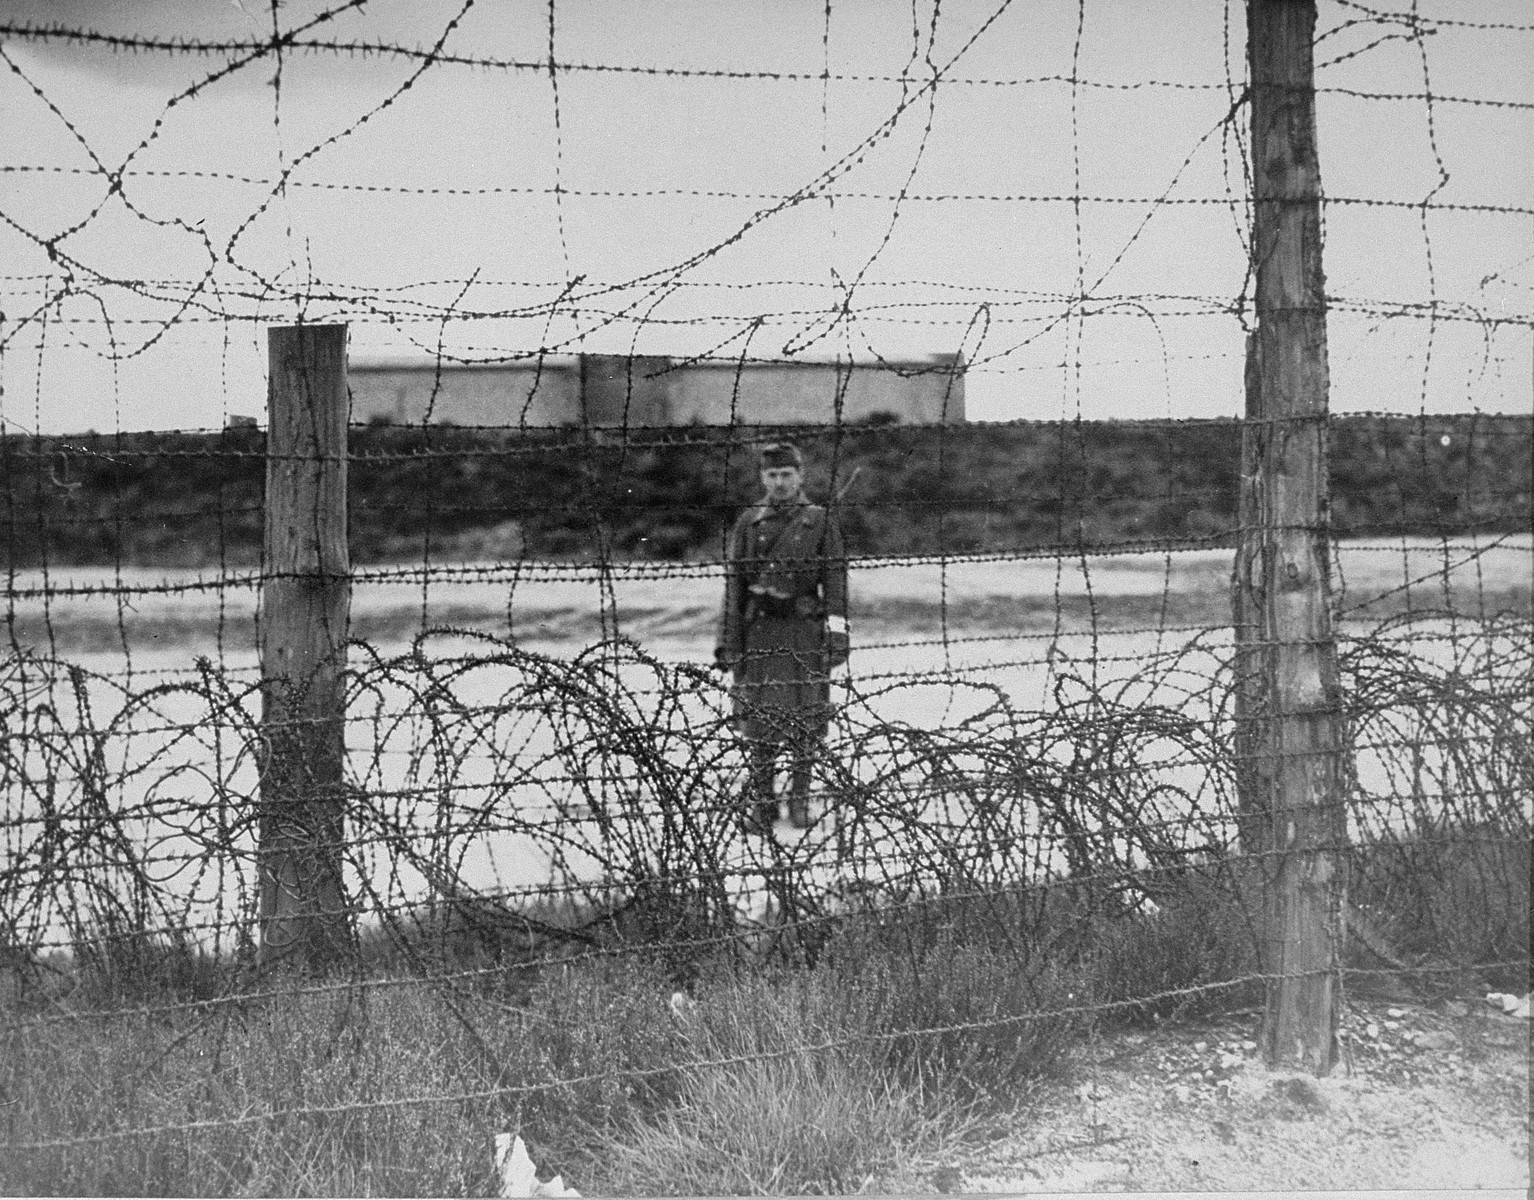 A Hungarian sentry guarding the perimeter at Bergen-Belsen concentration camp.